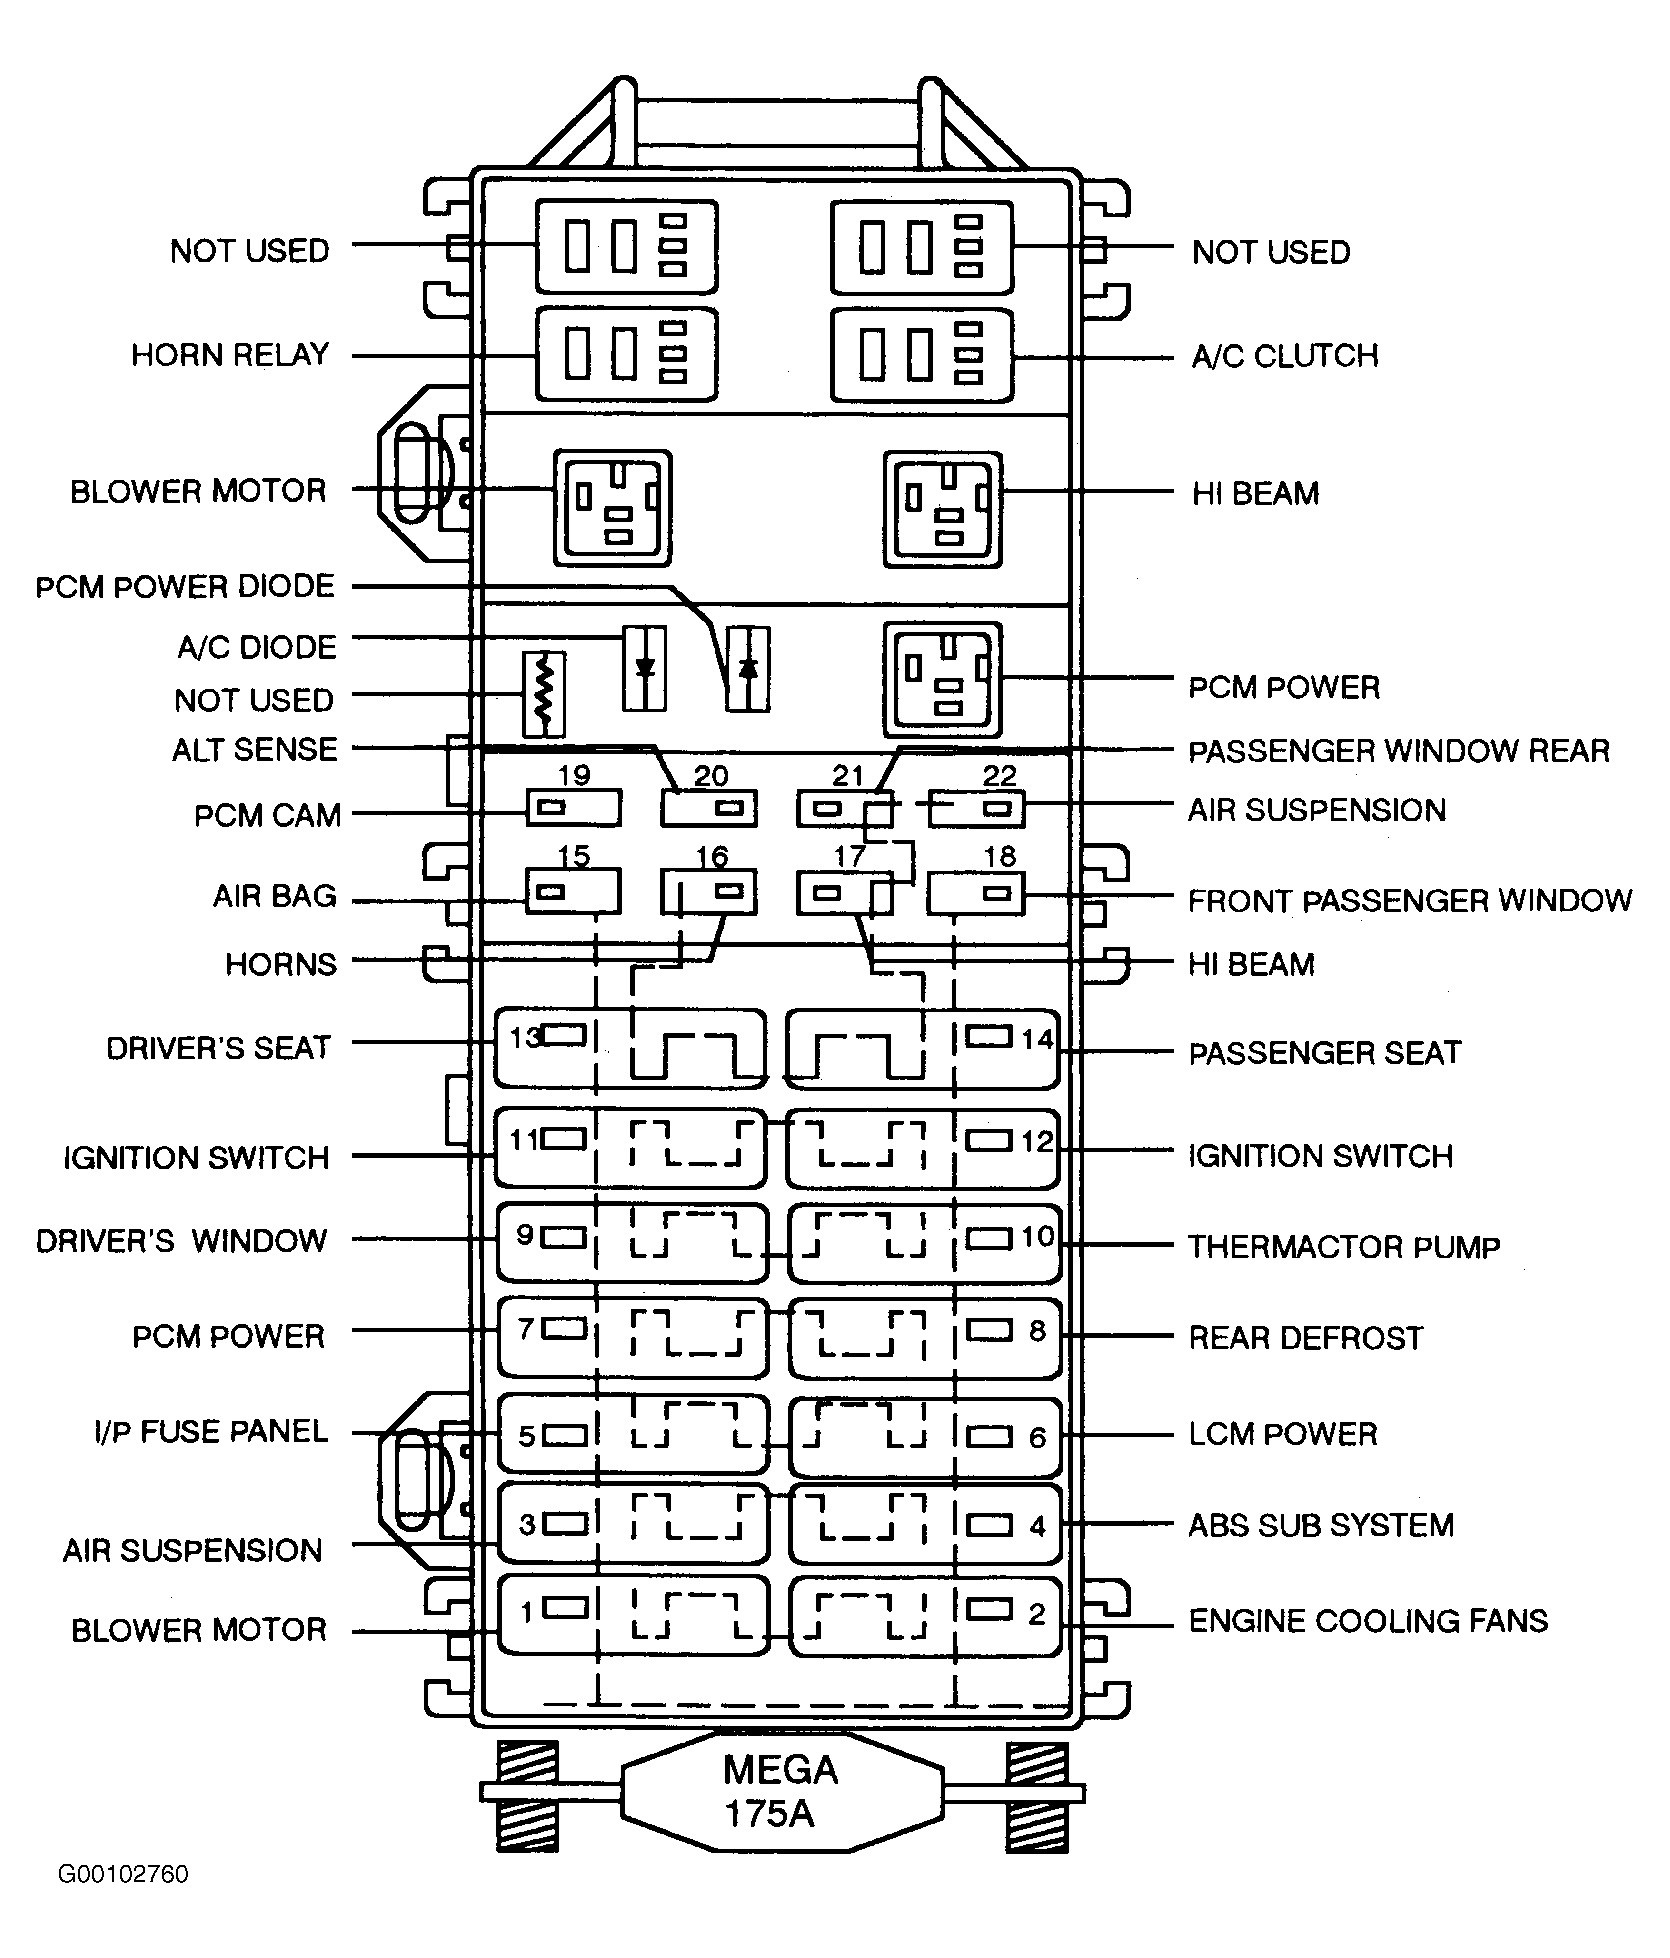 05 town car fuse diagram